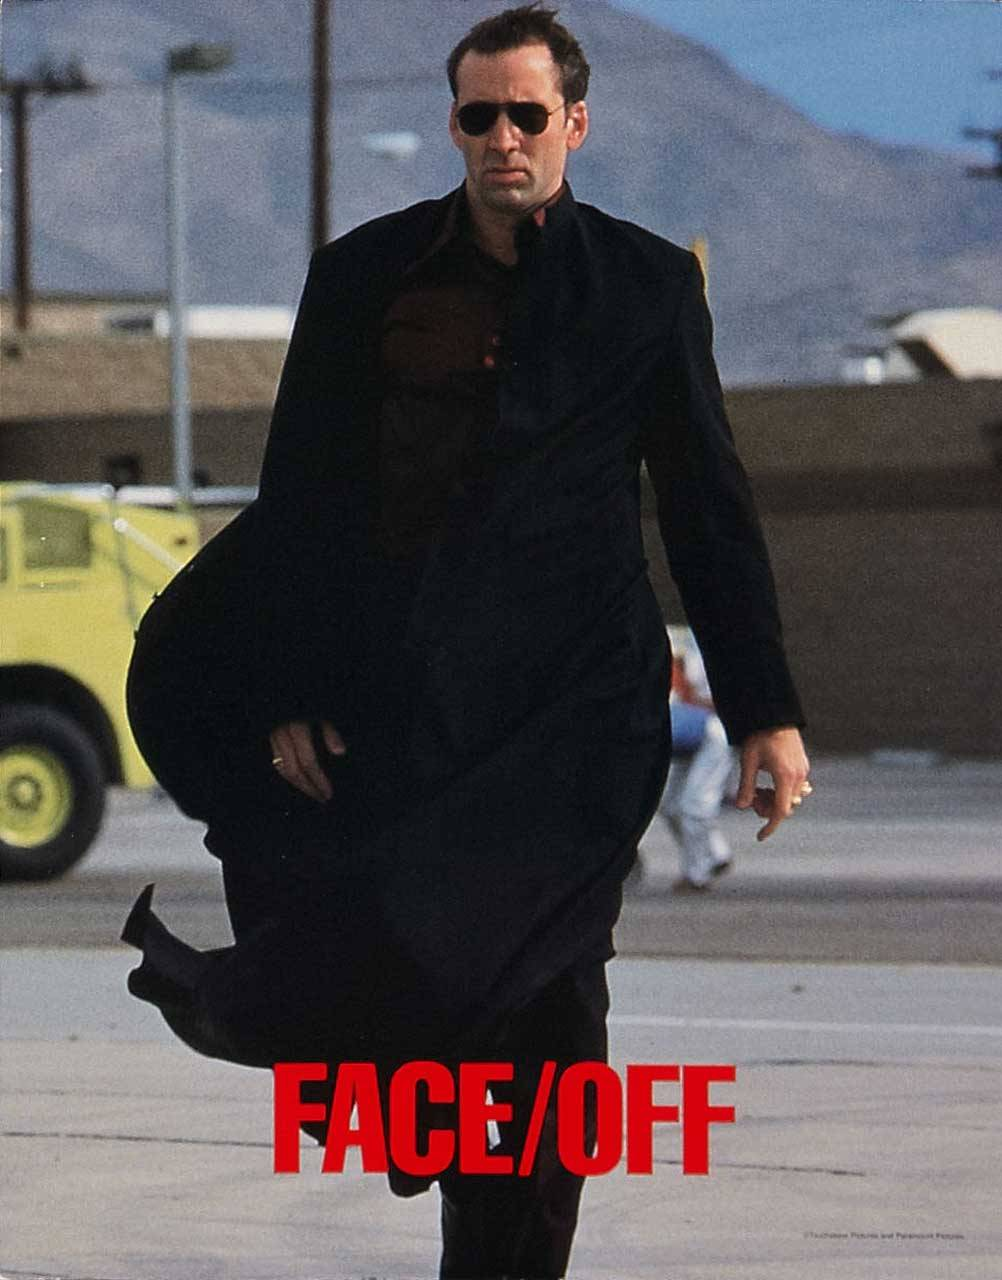 Face/Off, US lobby card. 1997